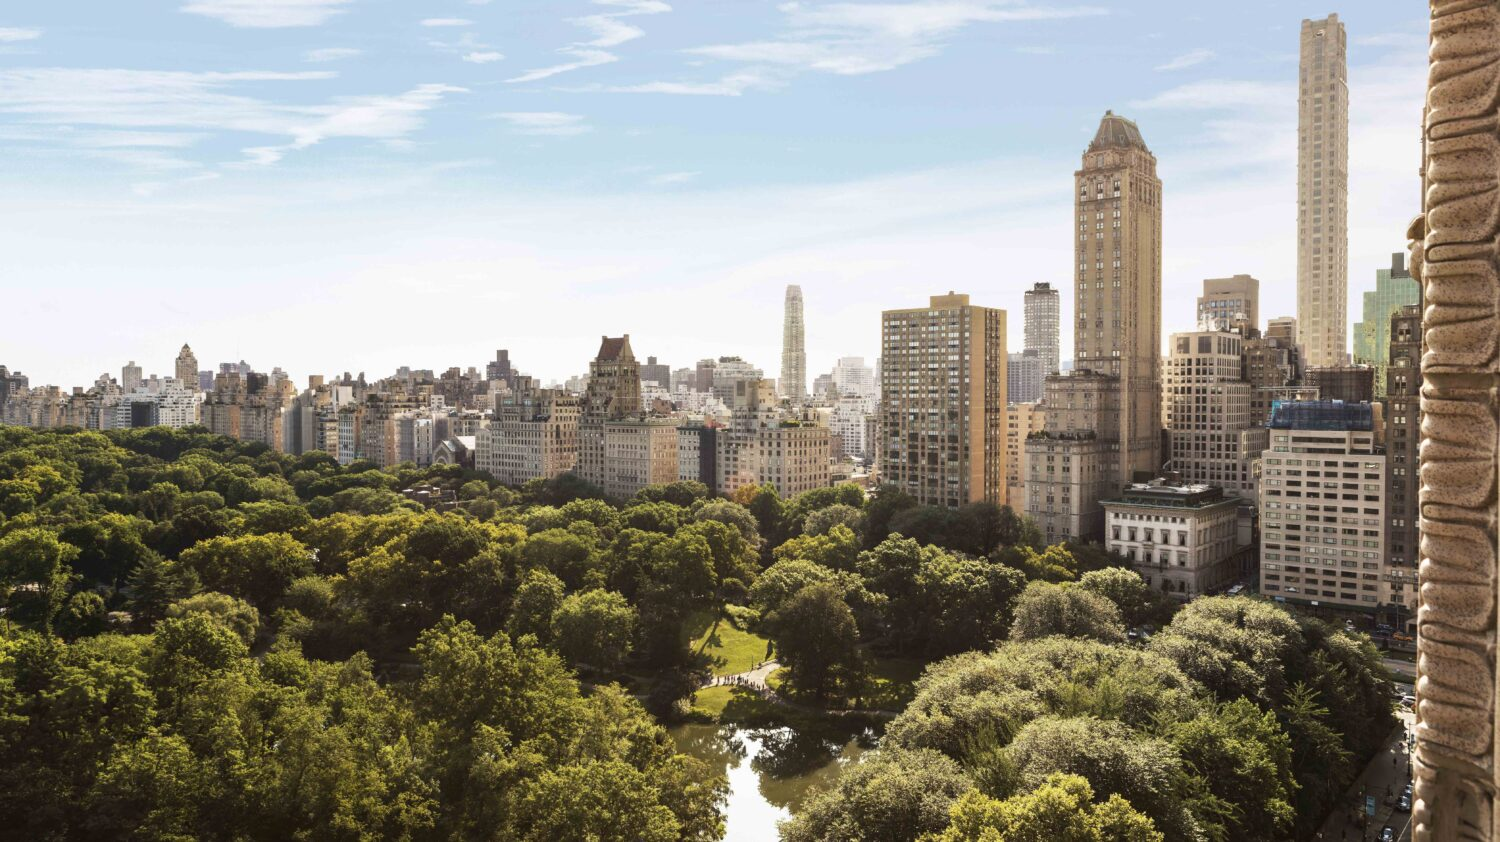 central park-ritz-carlton new york city